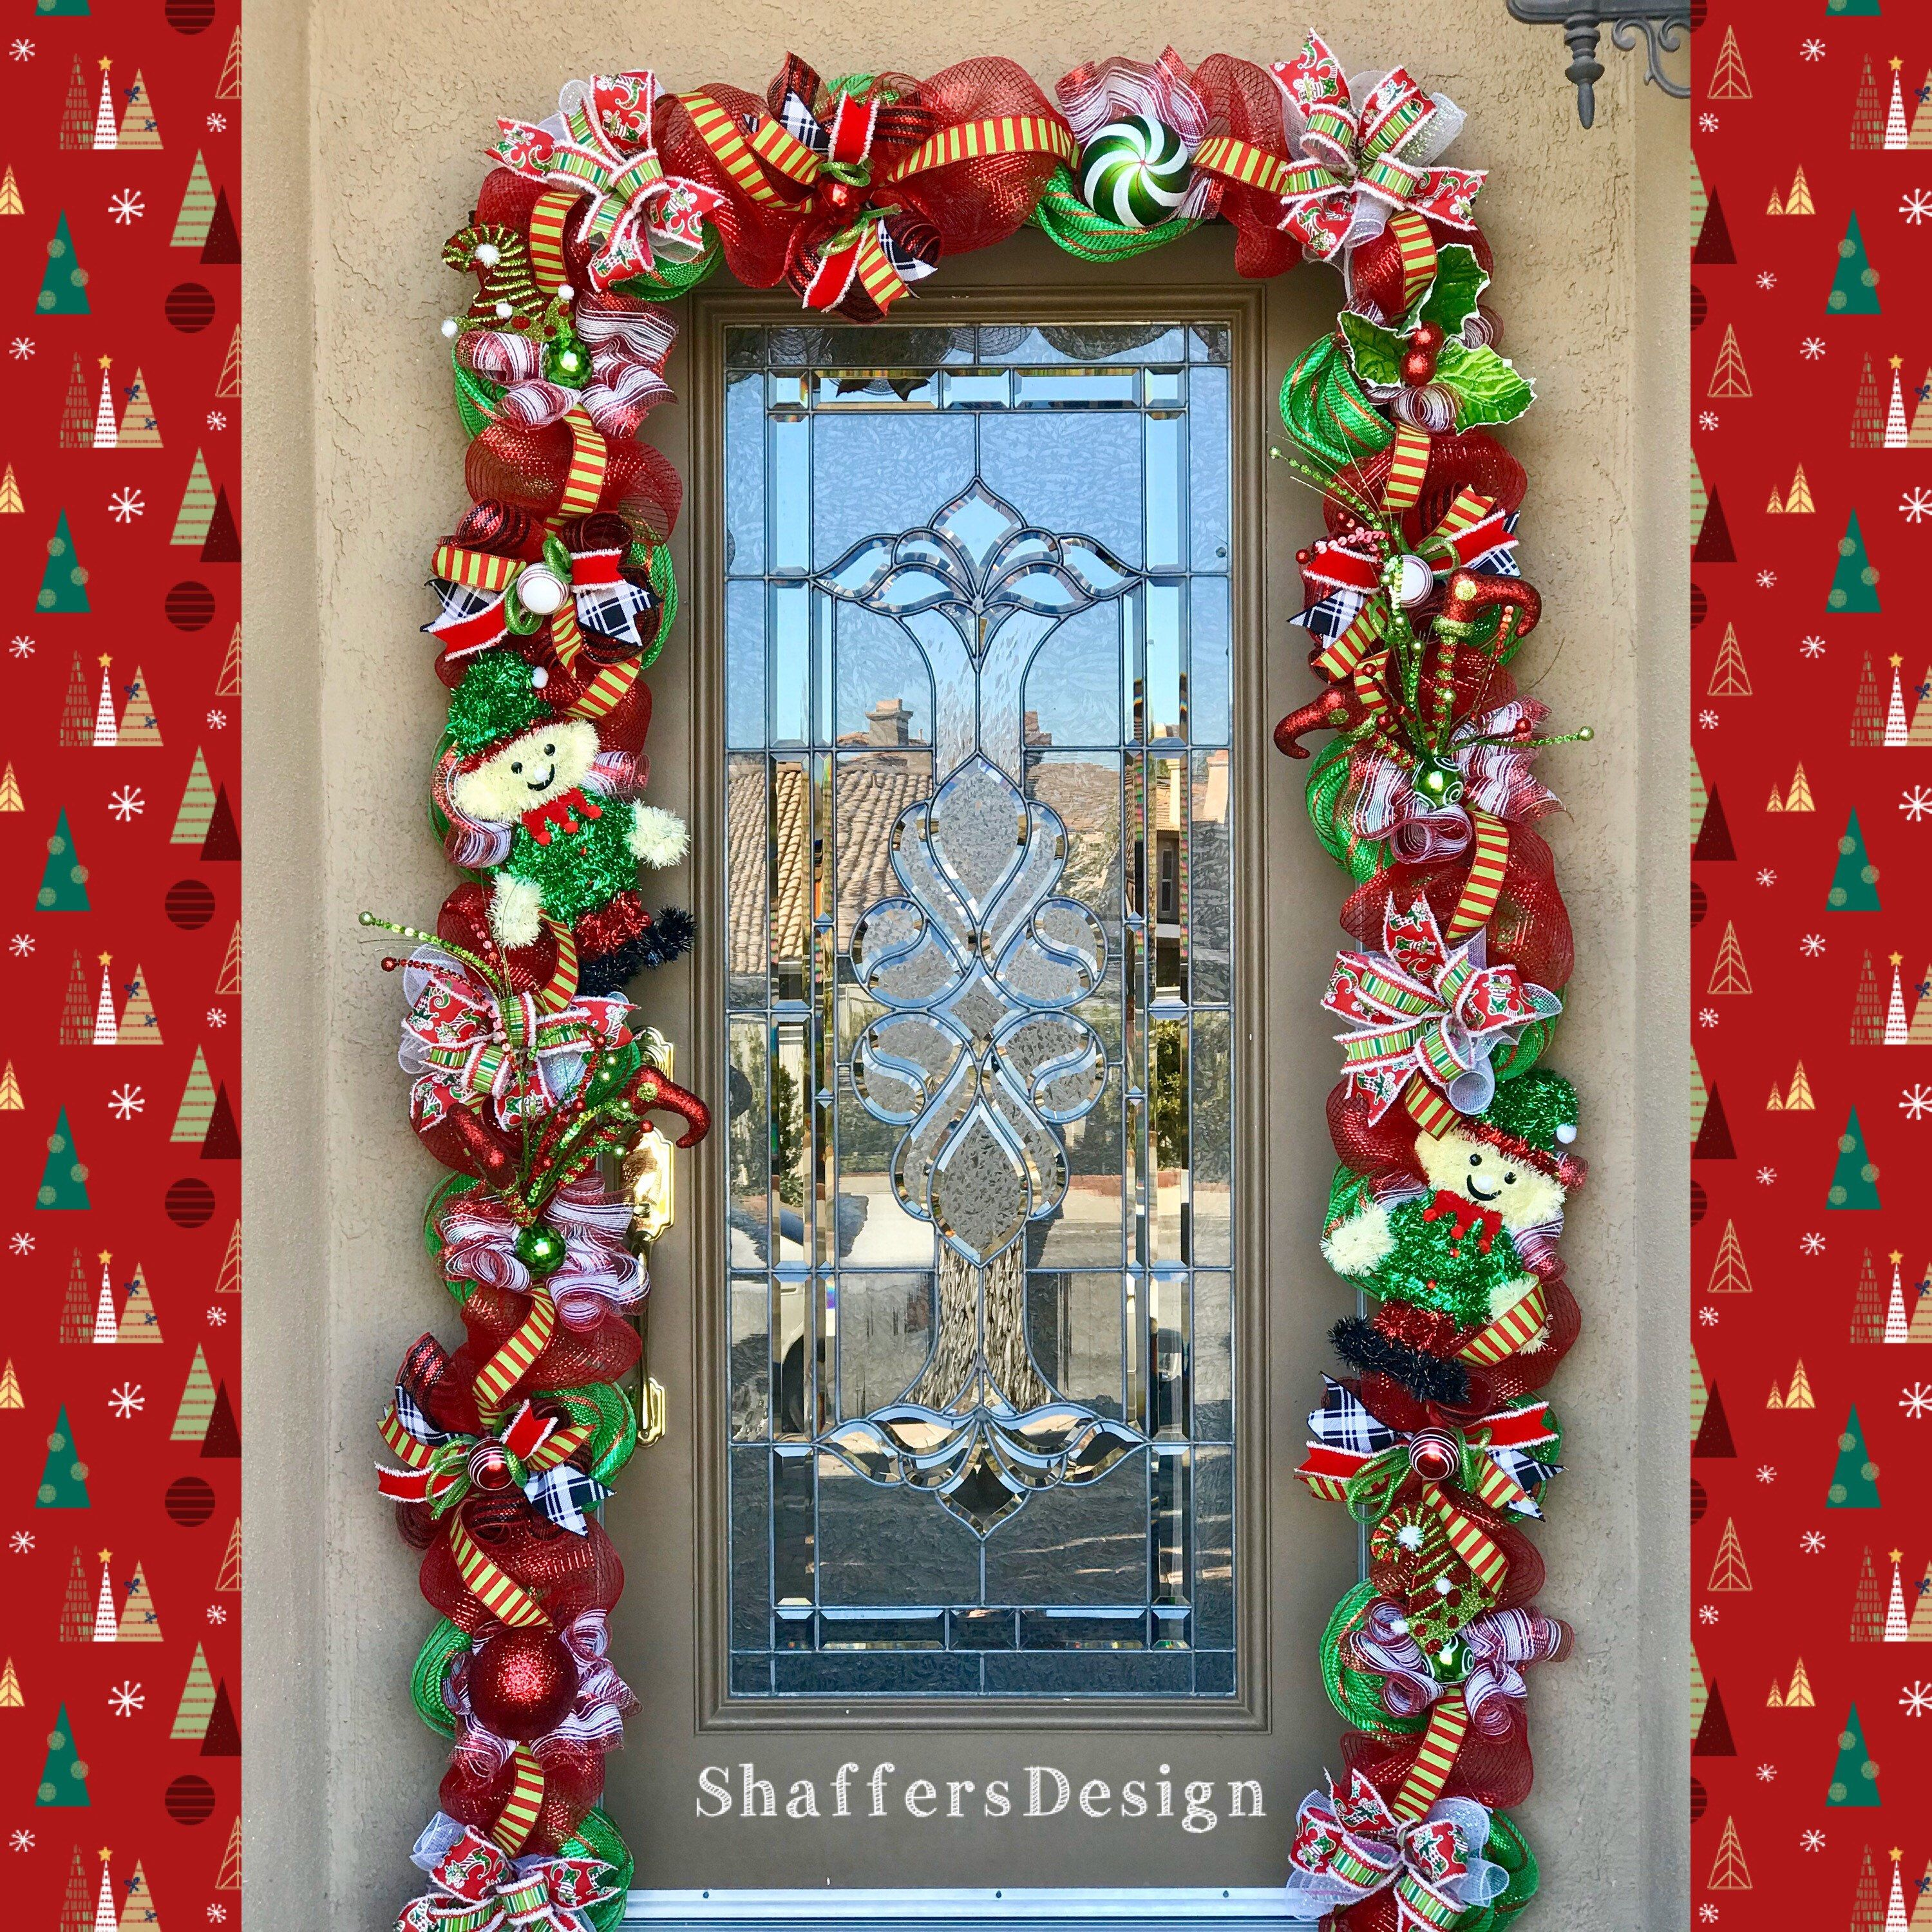 Outdoor Christmas Garland With Lights Red And Green Christmas Door Decor Christmas Front Door Garland With Lights With Images Outdoor Christmas Garland Christmas Lights Garland Christmas Door Decorations